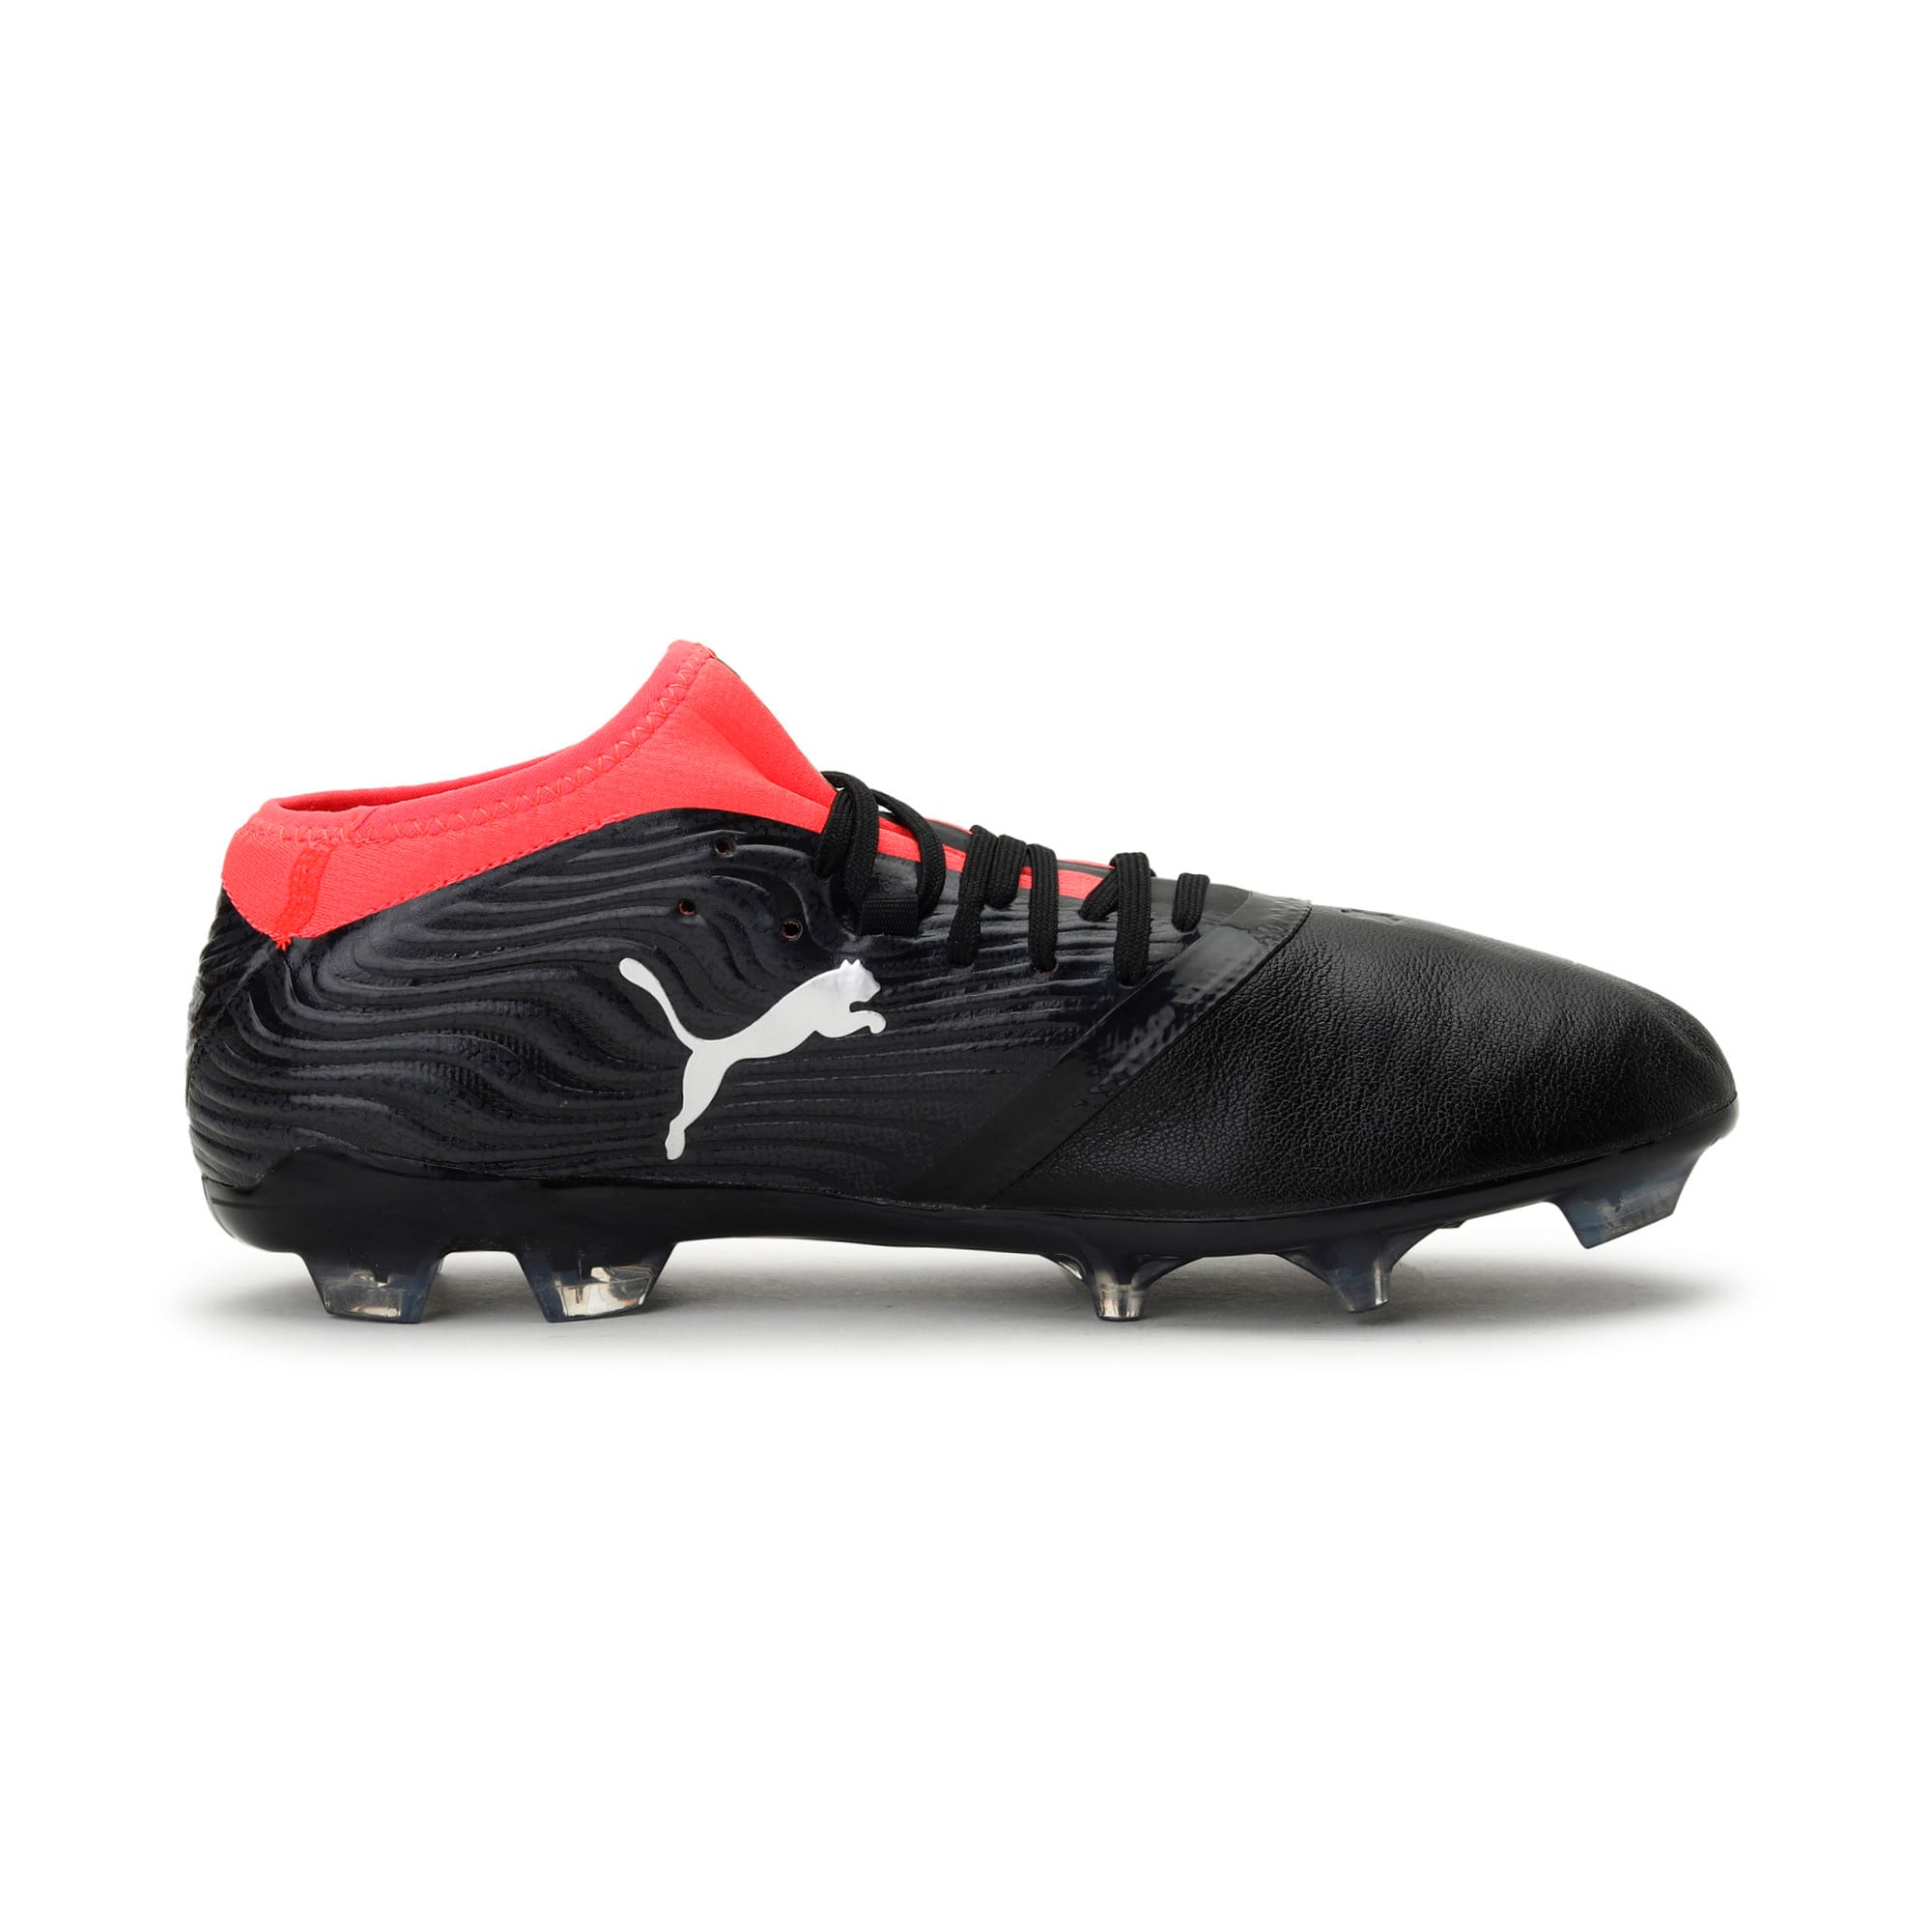 Thumbnail 5 of ONE 18.2 FG Men's Football Boots, Black-Silver-Red, medium-IND